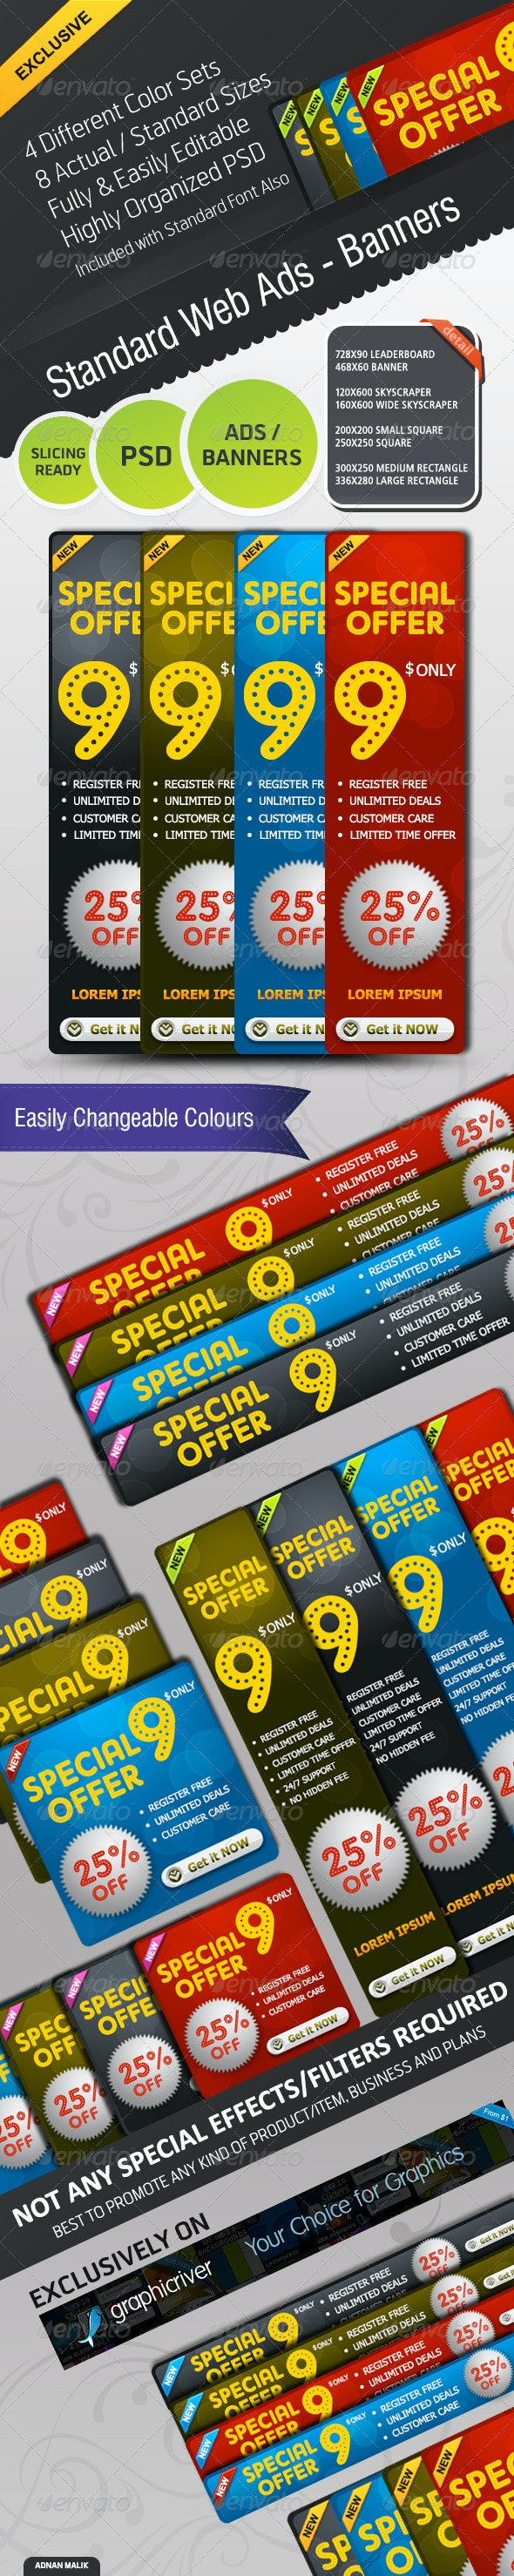 Standard Web Ads - Banners - Banners & Ads Web Elements